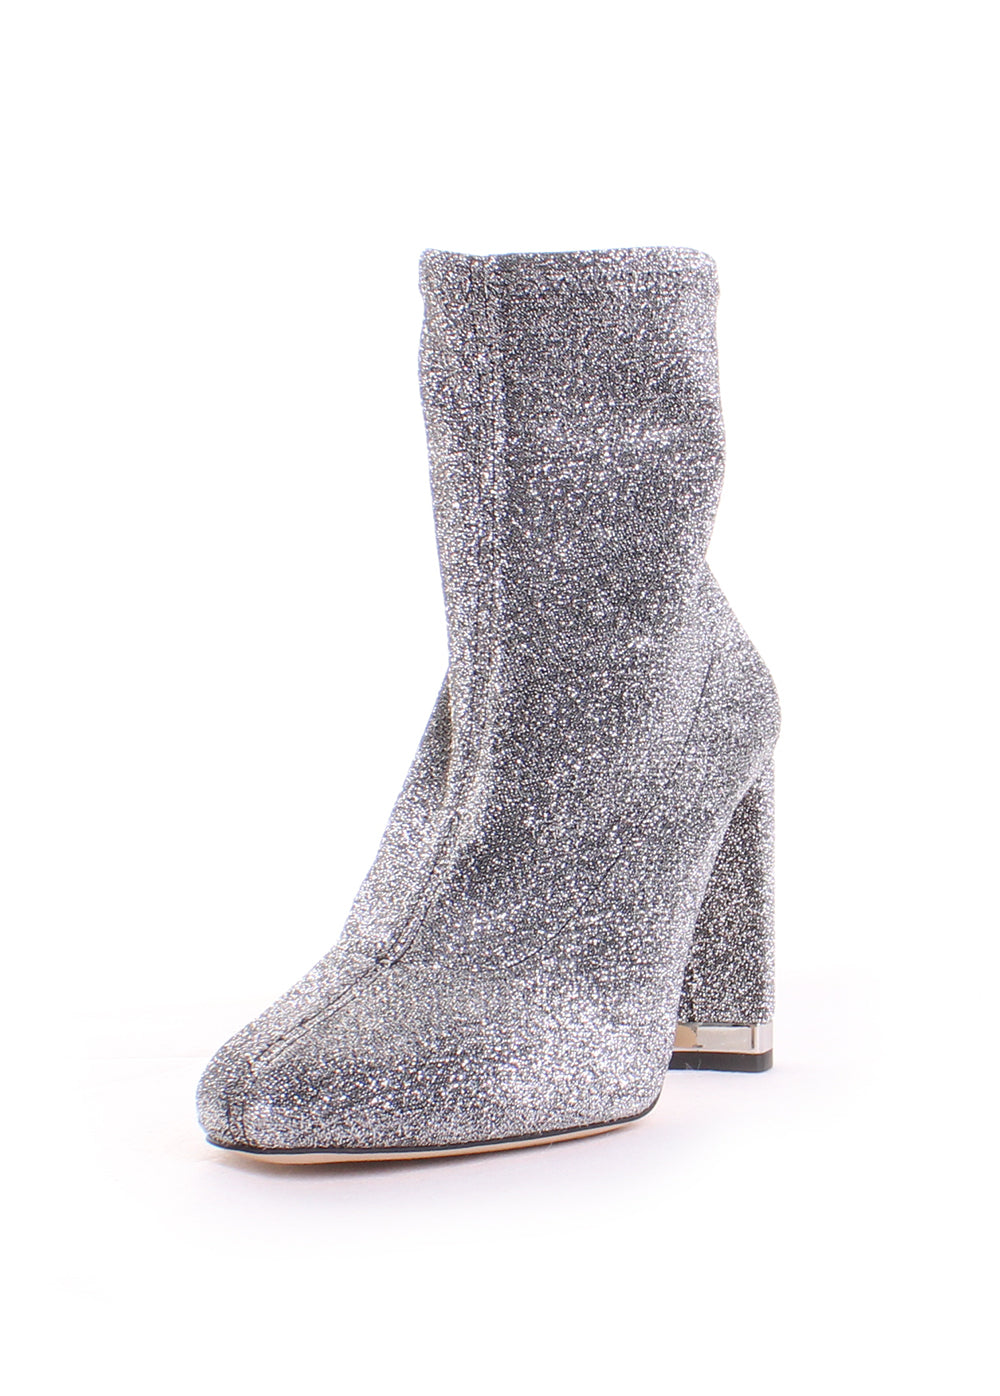 Michael Kors Mandy Glitter Stretch-Knit Bootie in Black/Silver